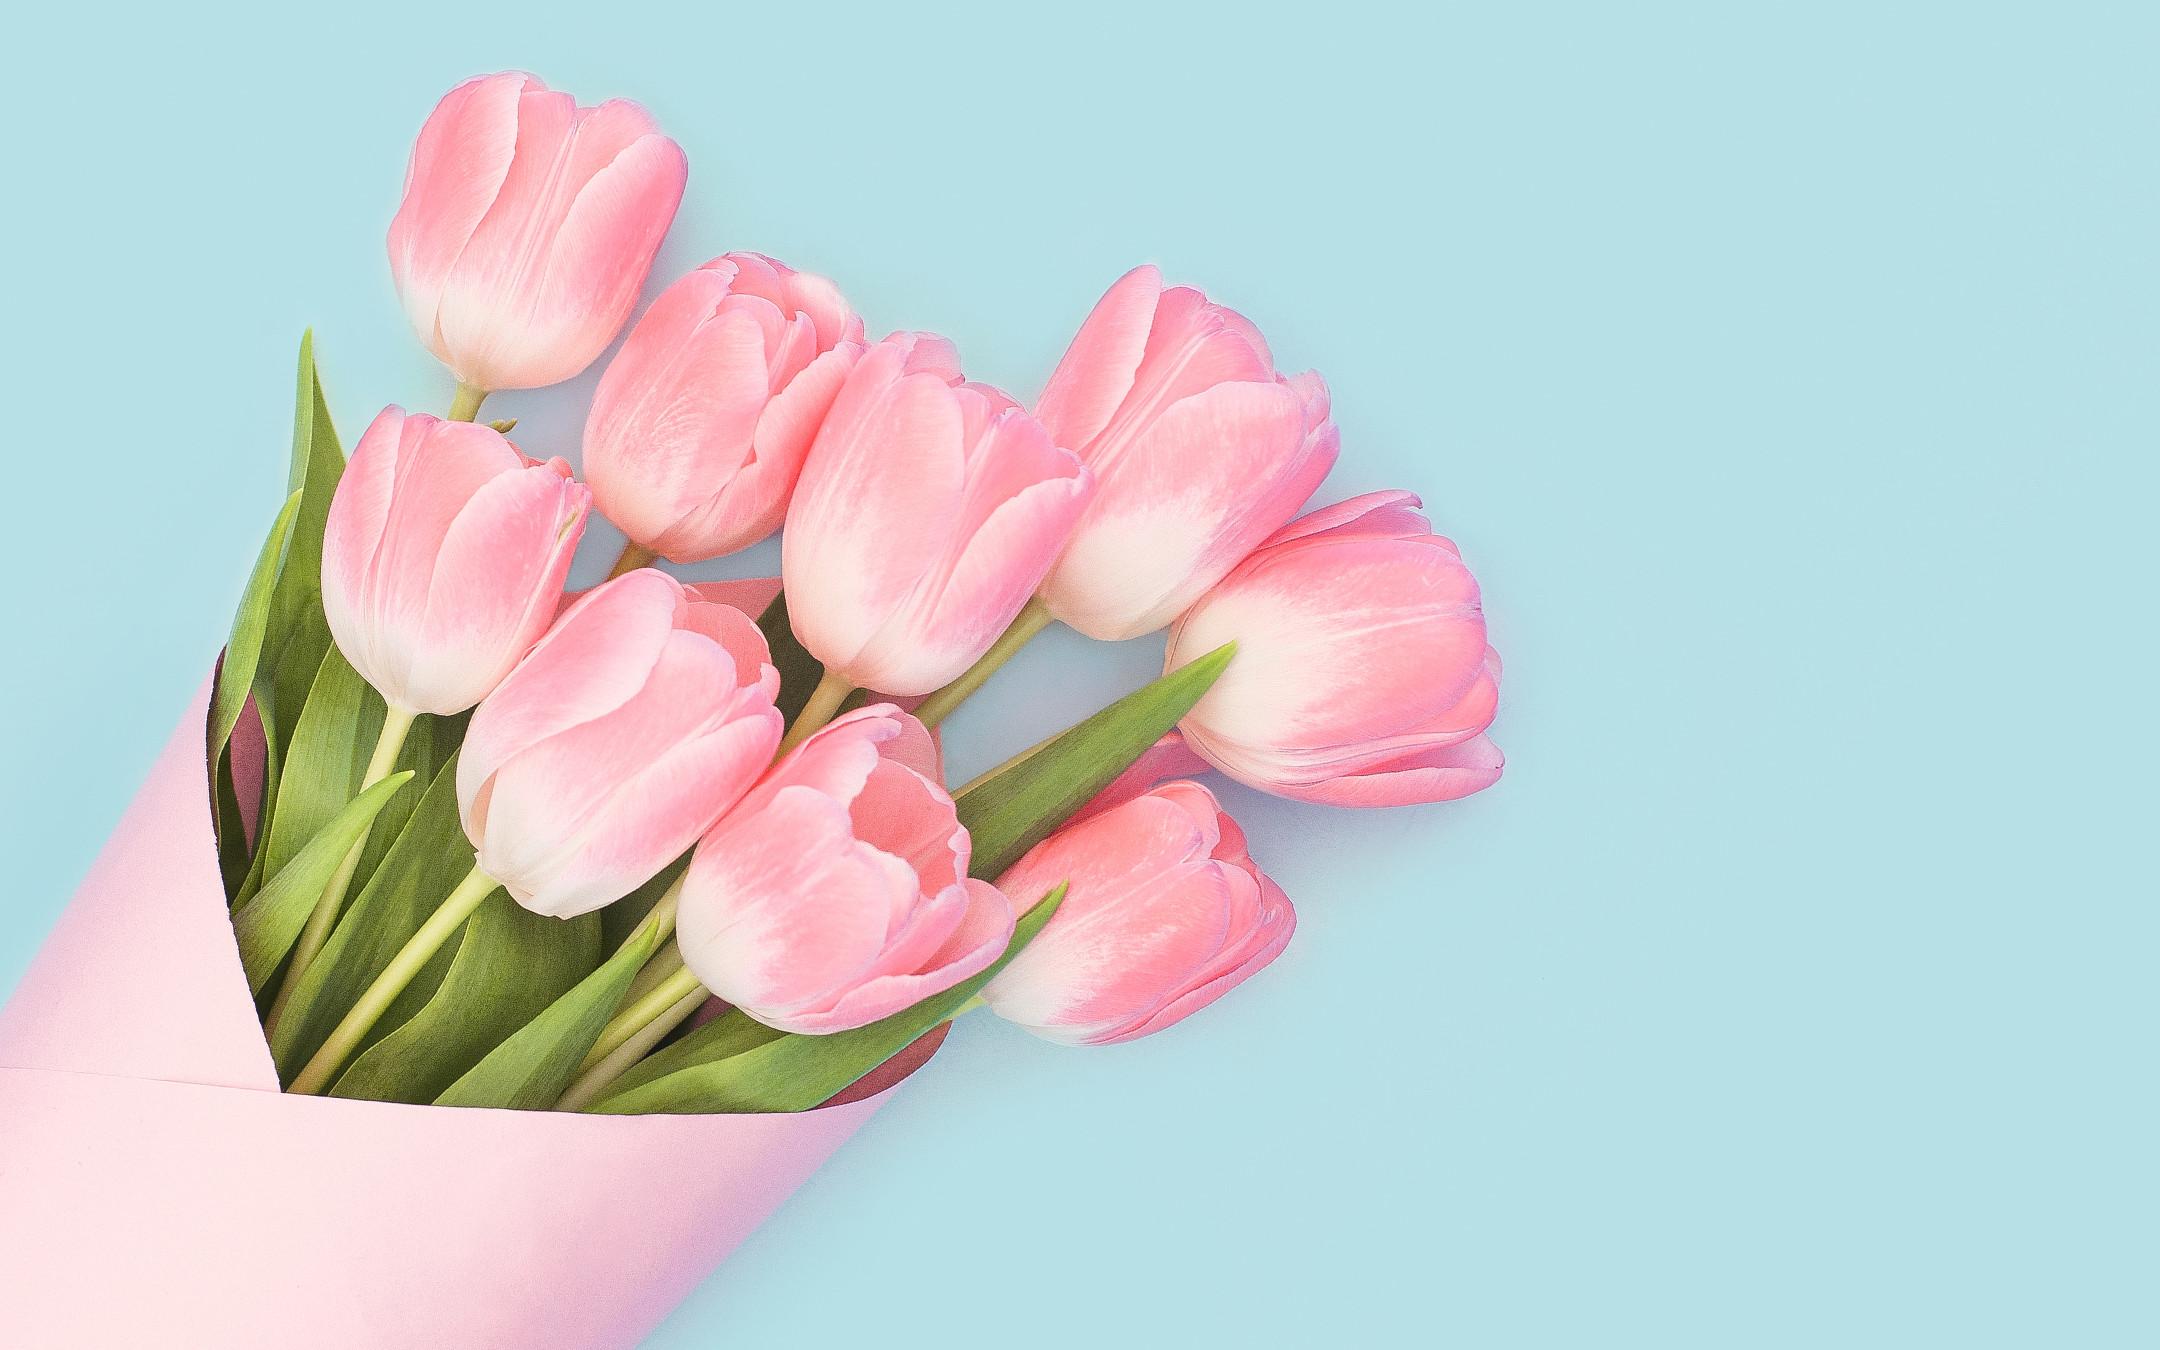 Res: 2160x1350, Tags: Pink Baby Tulips